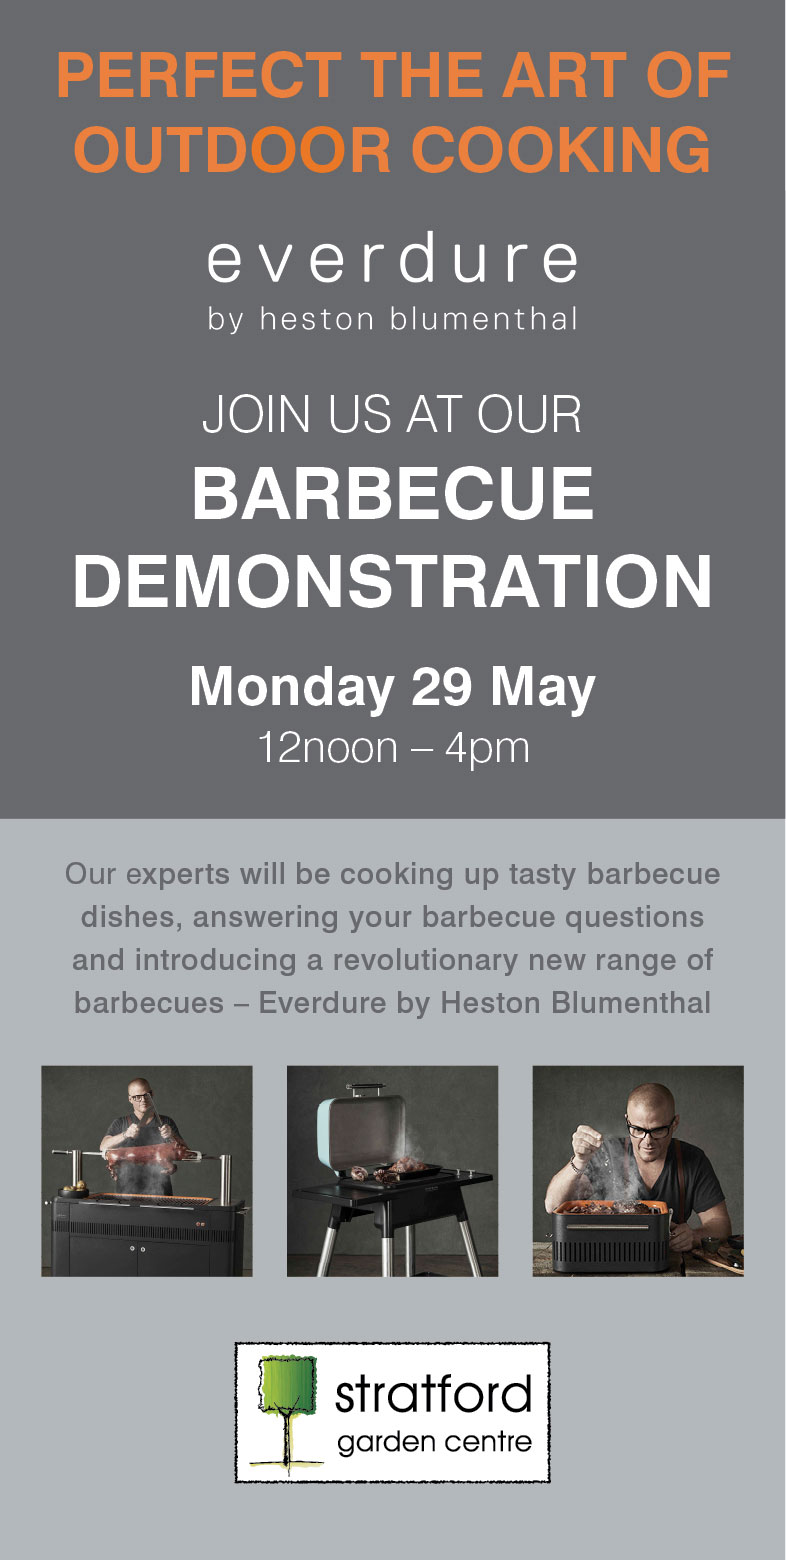 BBQ-demo-event-stratford-garden-centre-2